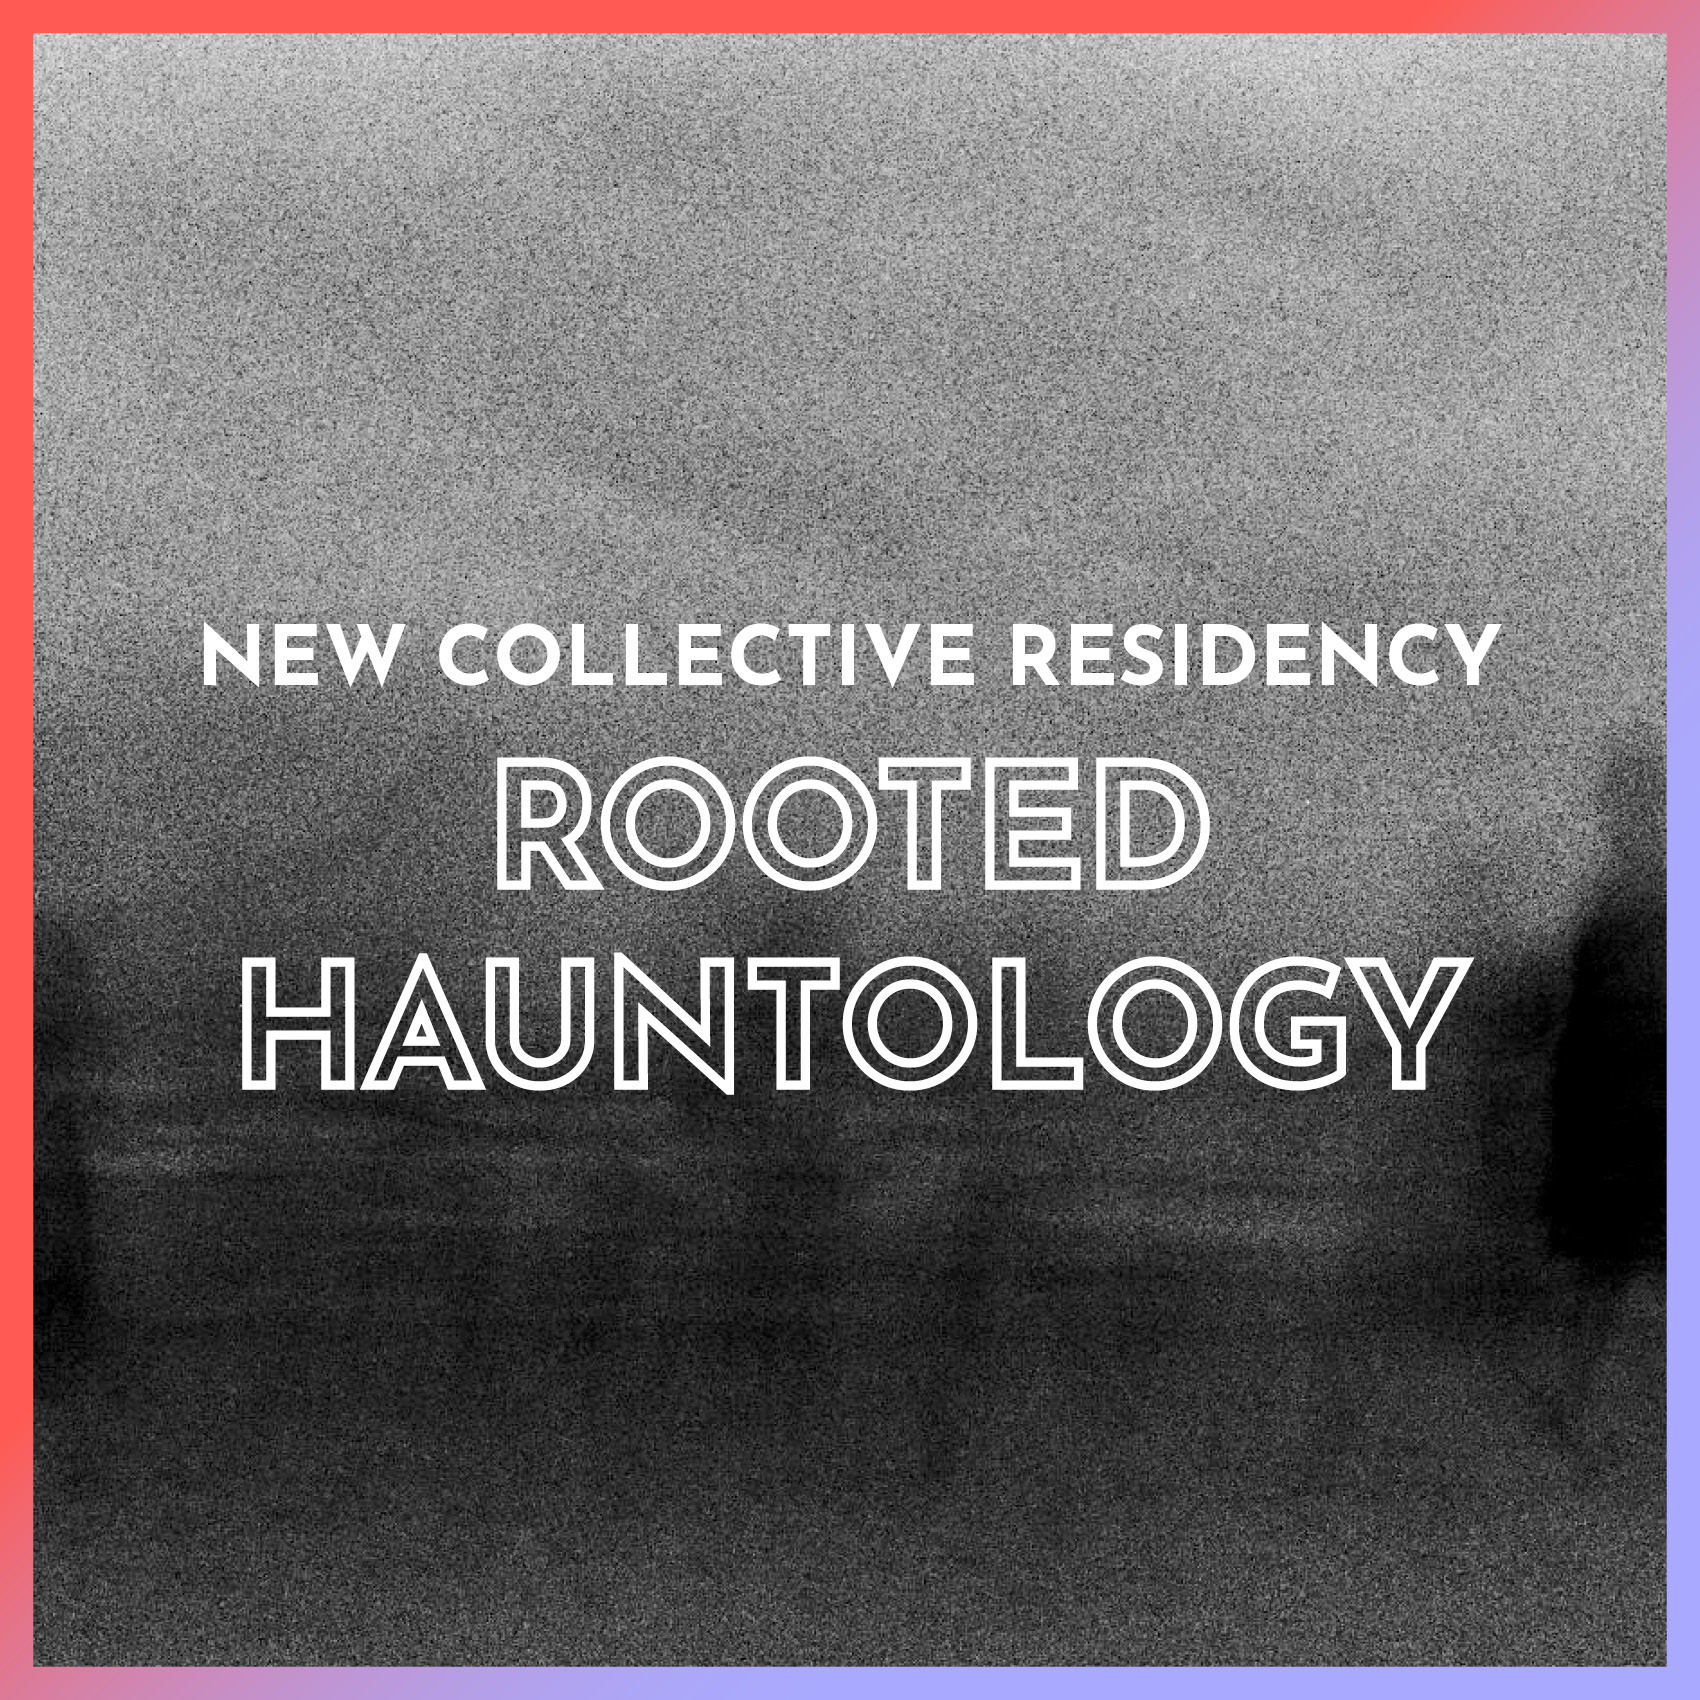 New Collective Residency: Rooted Hauntology